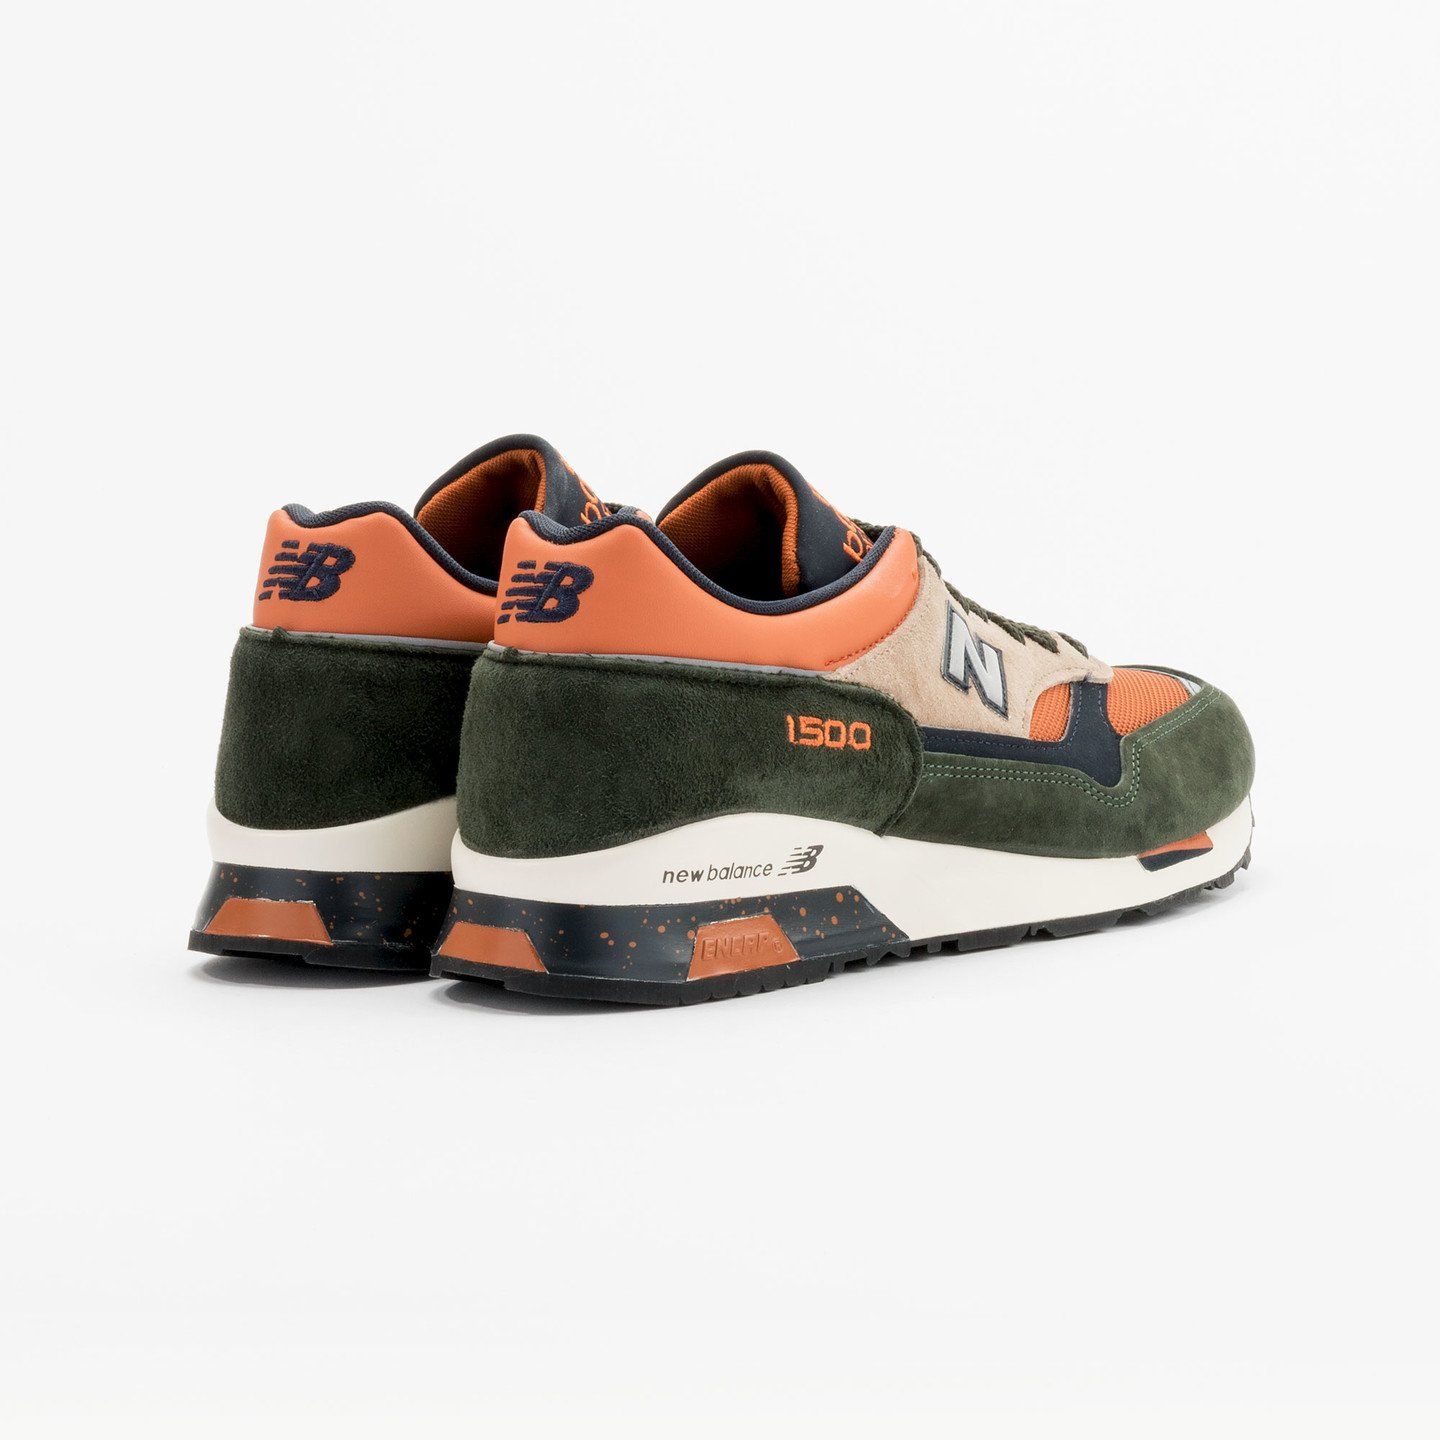 New Balance M1500 RO - Made in England Green / Orange M1500RO-45.5